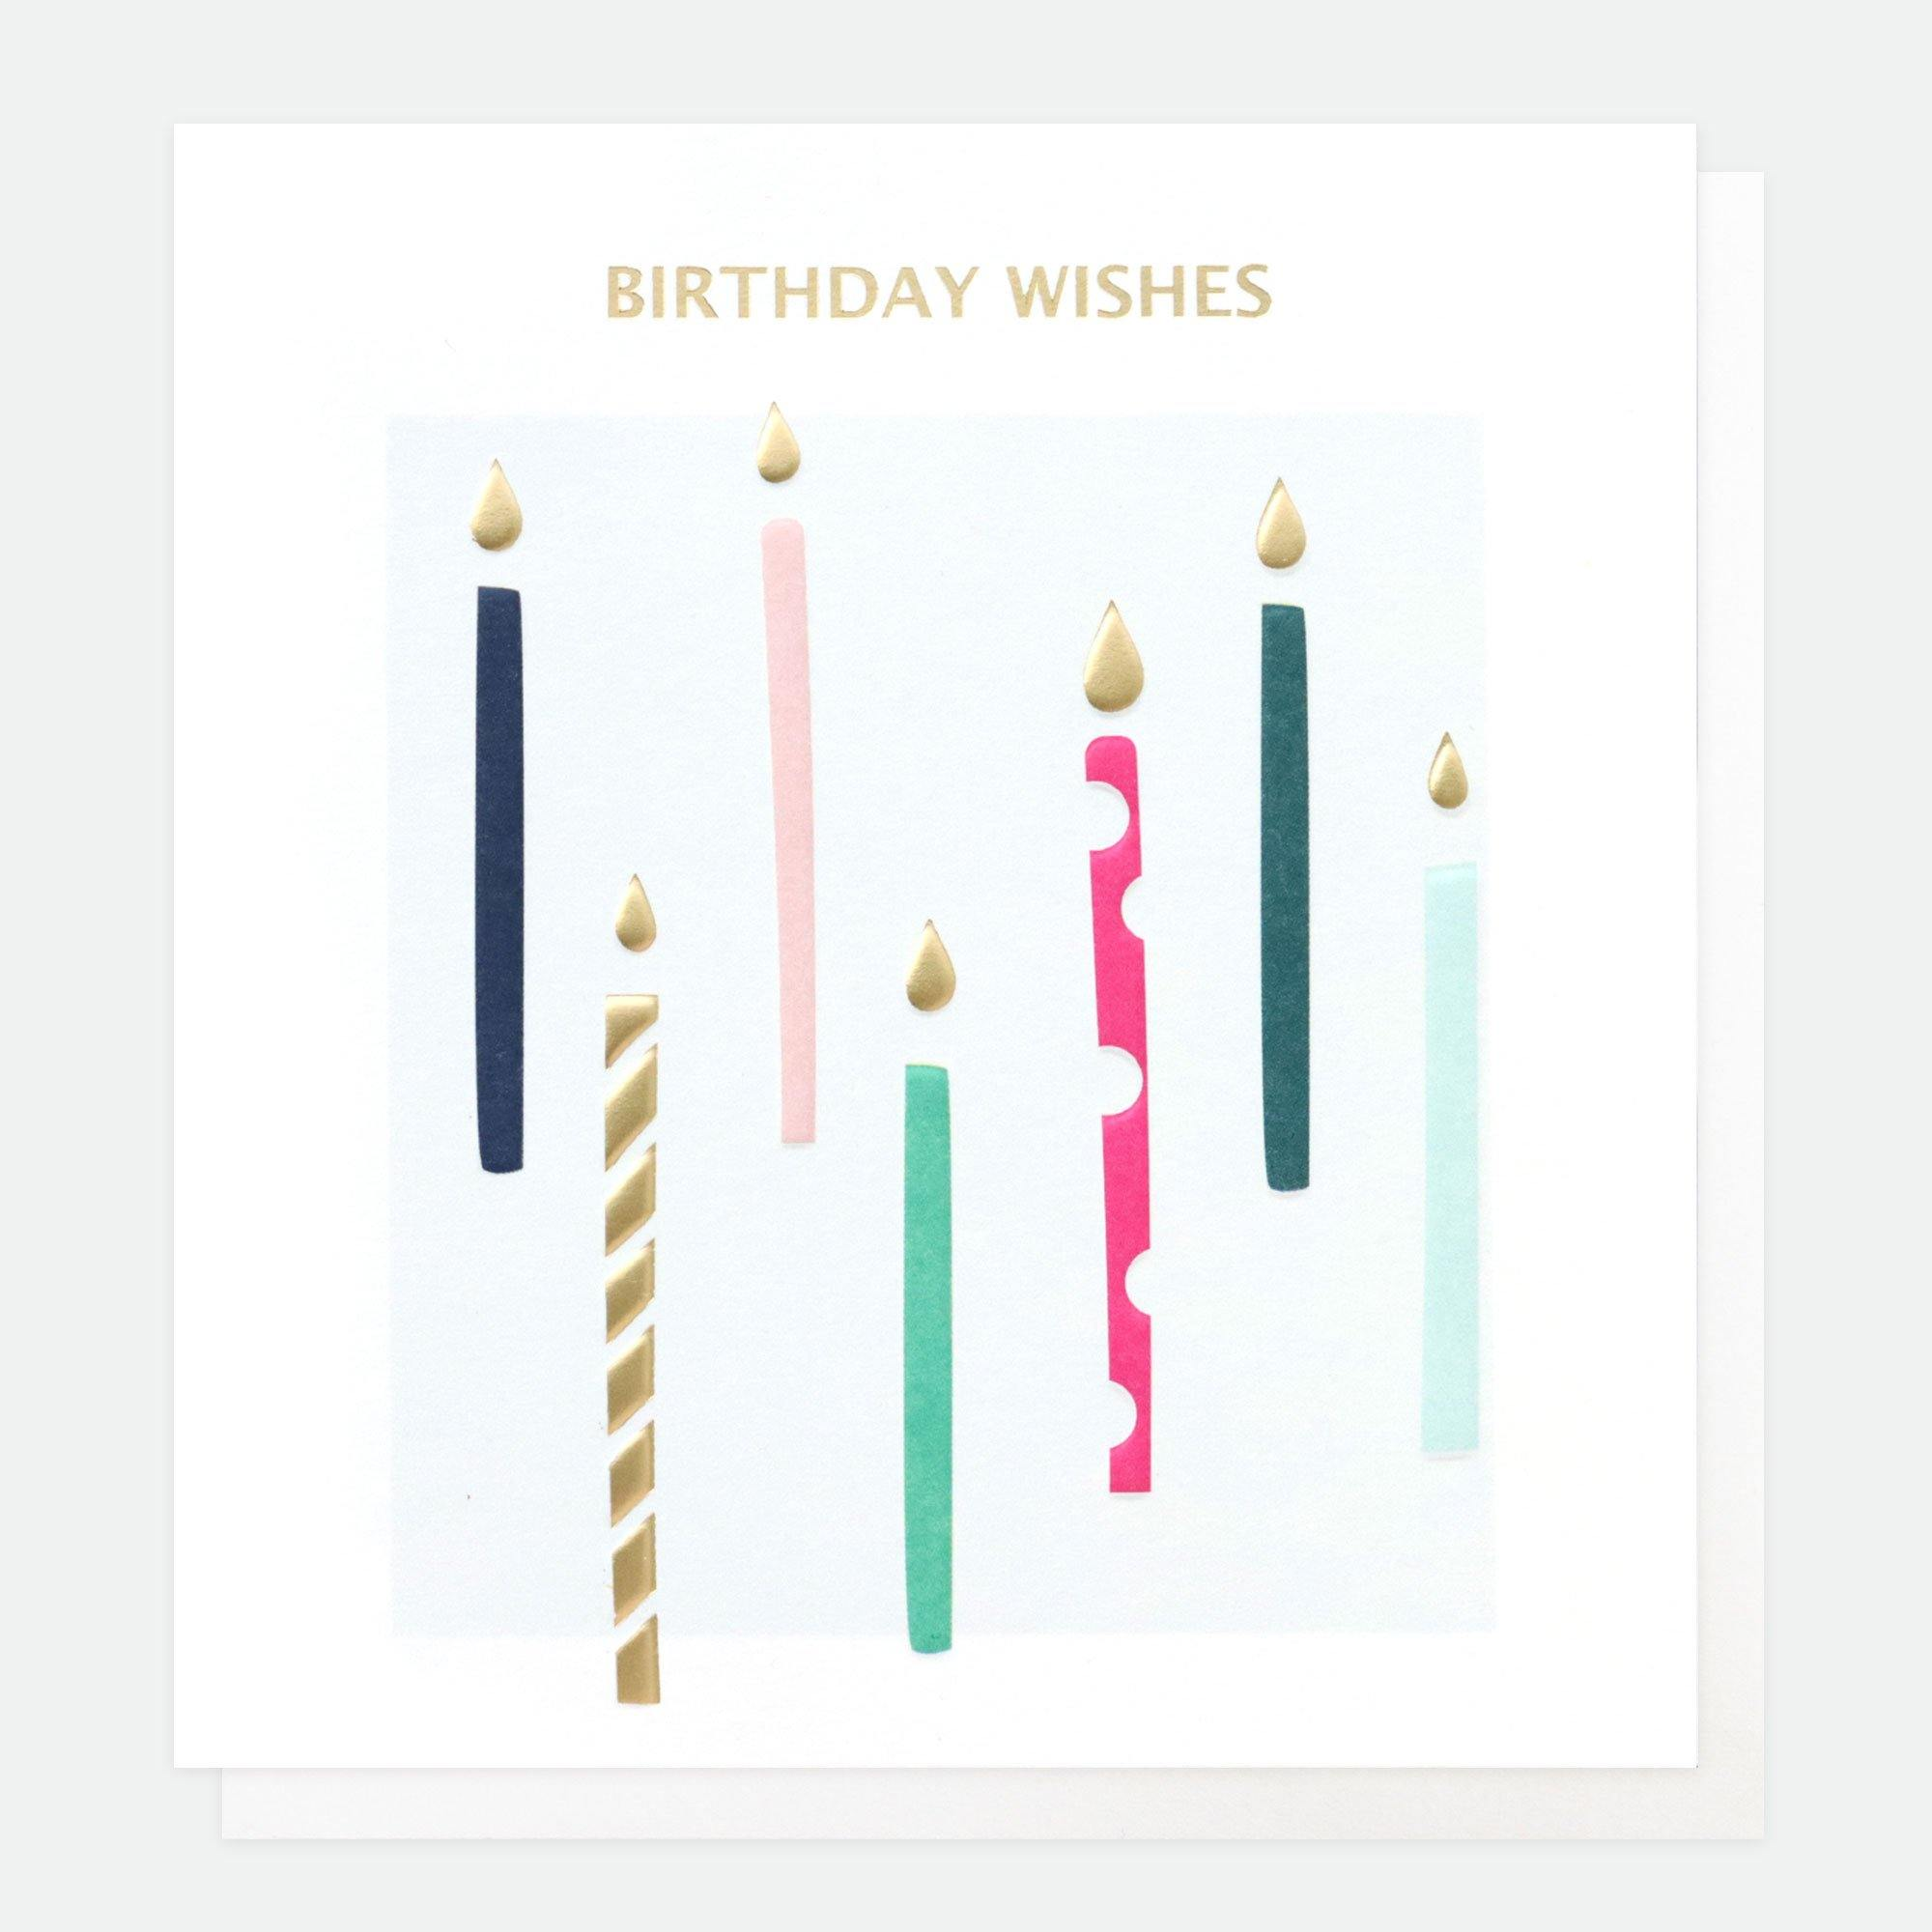 Birthday Wishes Candles, Birthday Candles by Insideout